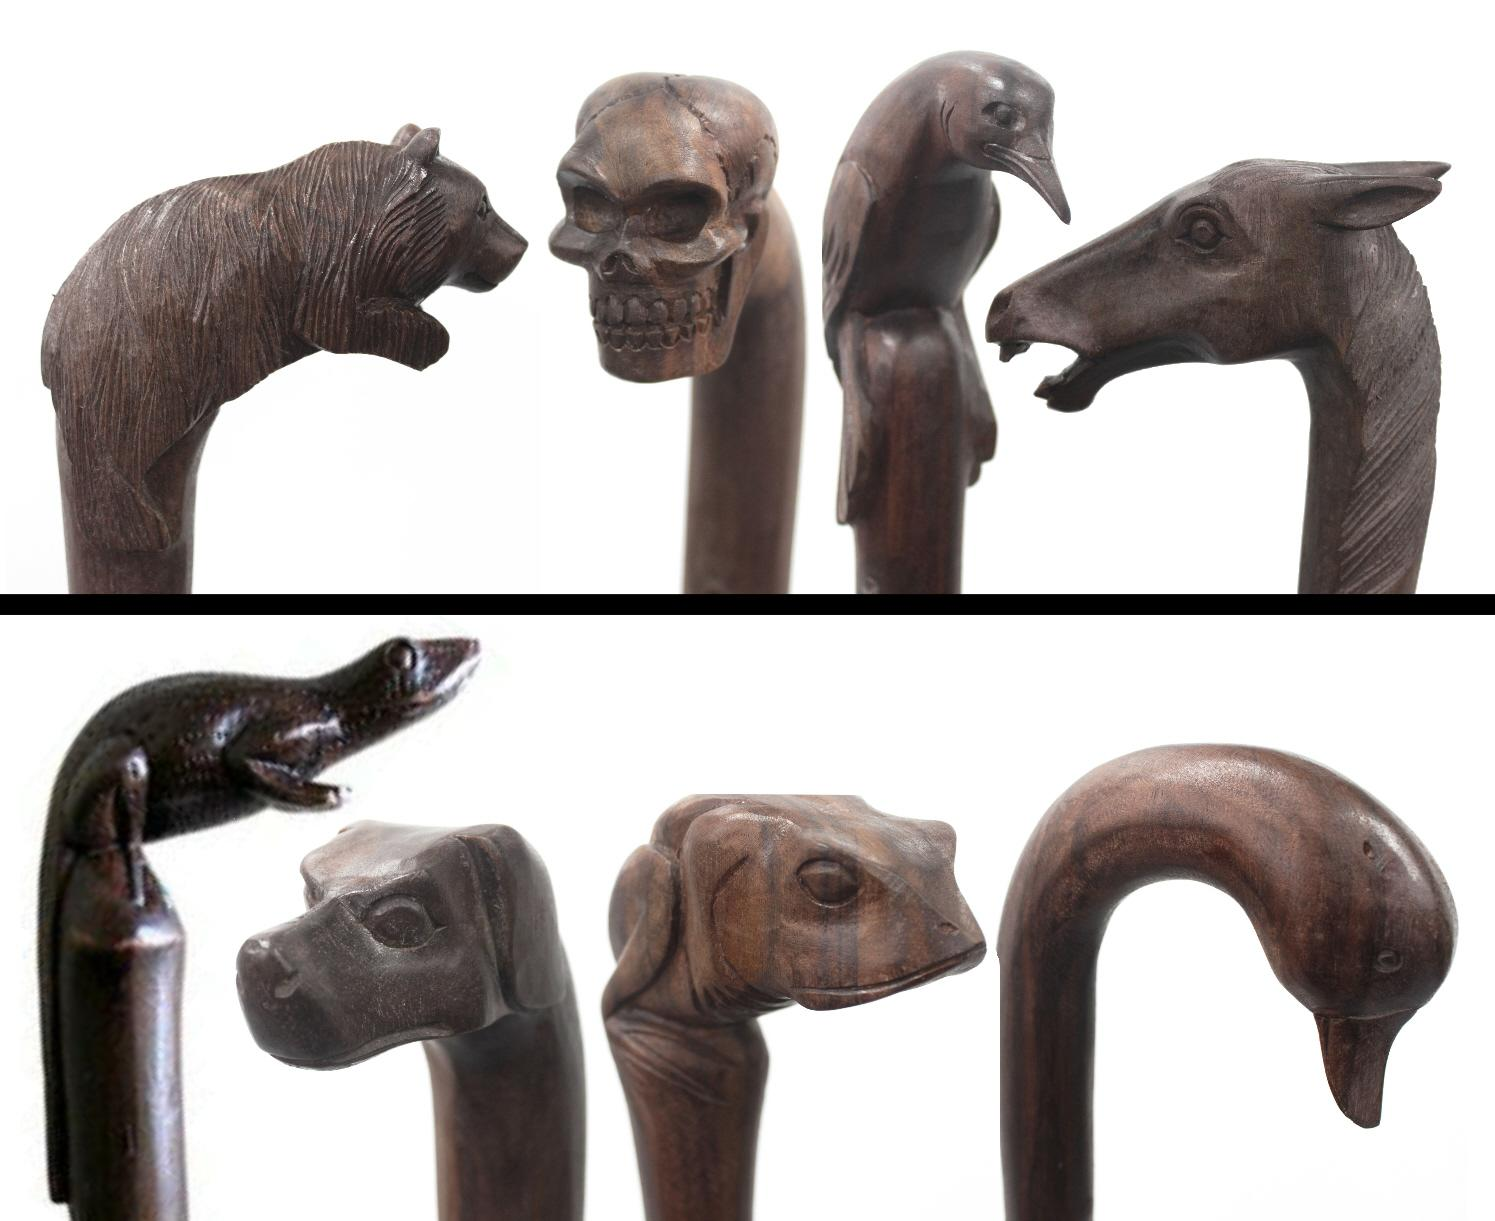 Wooden Carved Walking Sticks